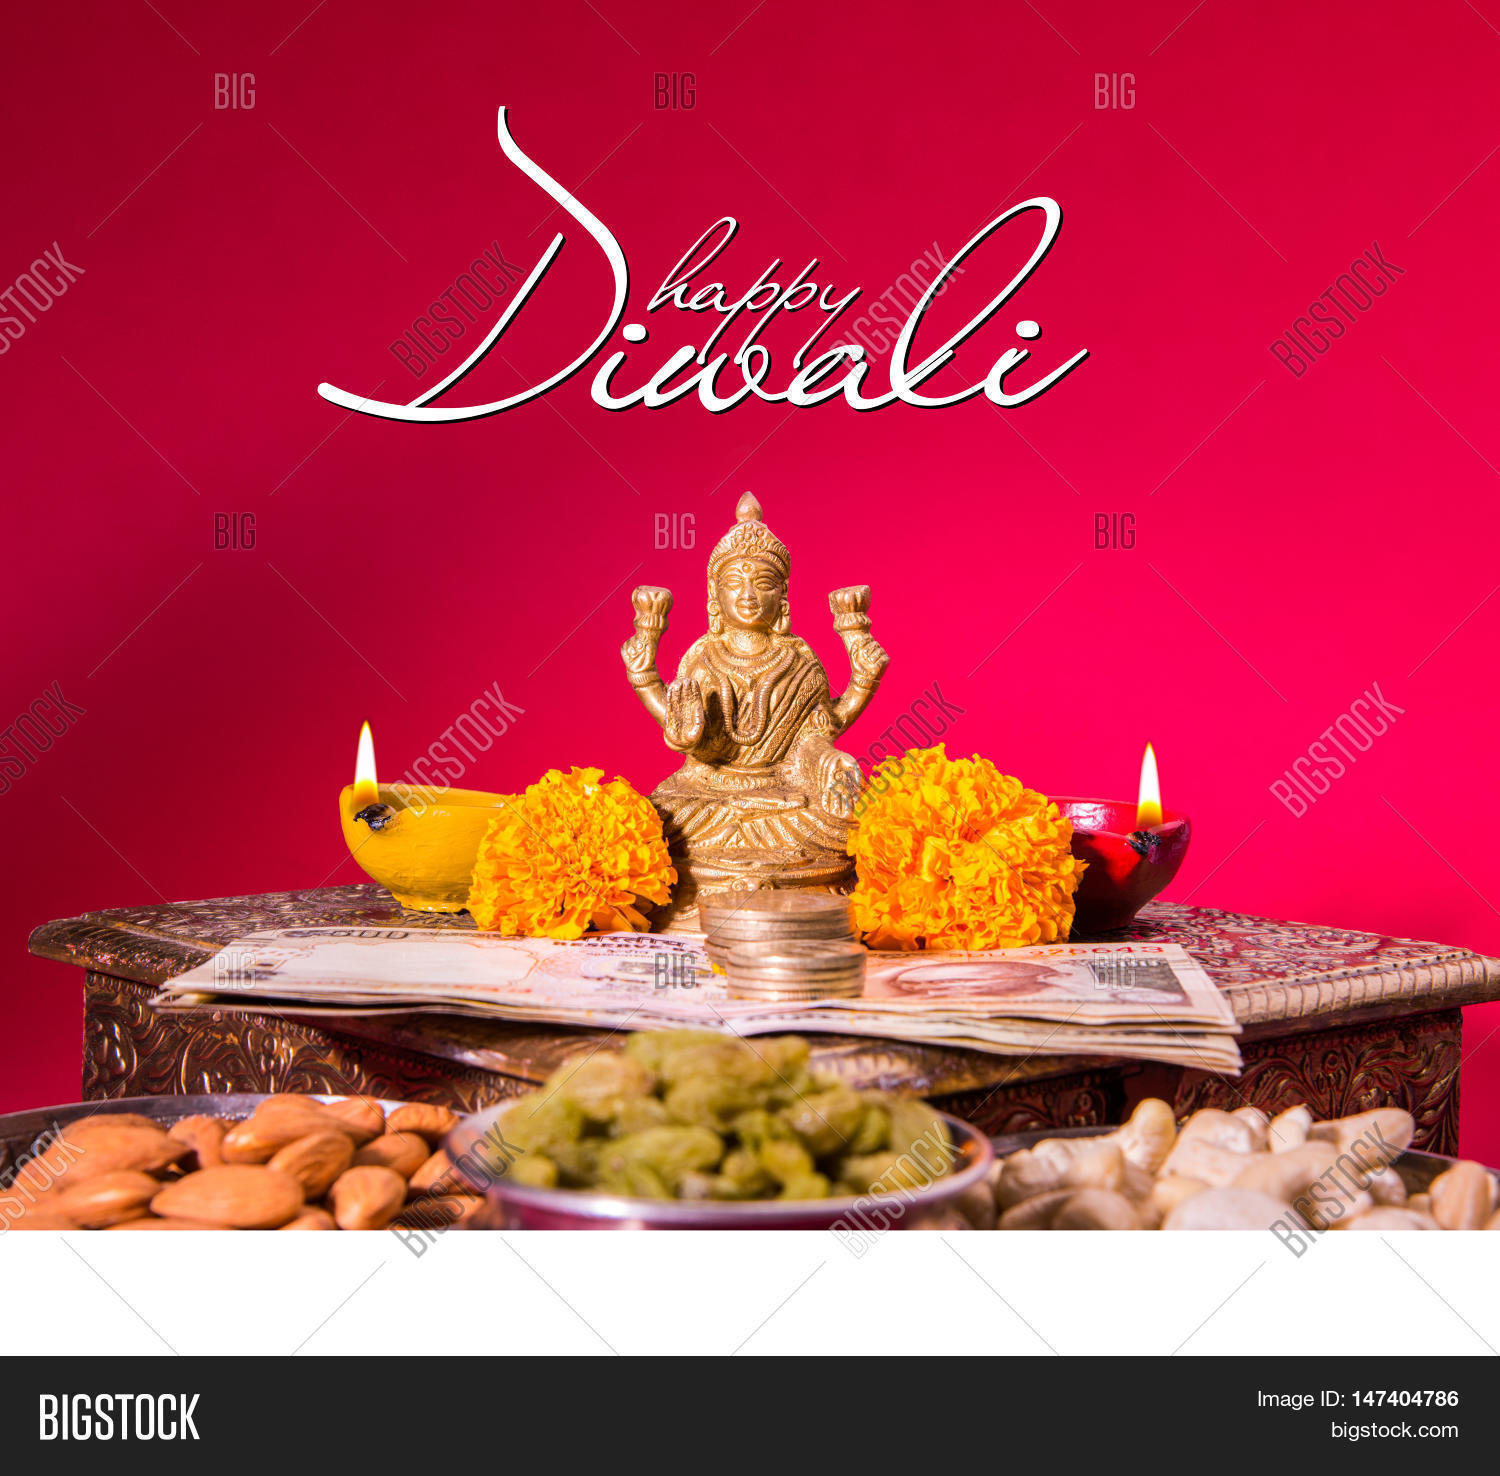 Happy Diwali Greeting Card Showing Image Photo Bigstock